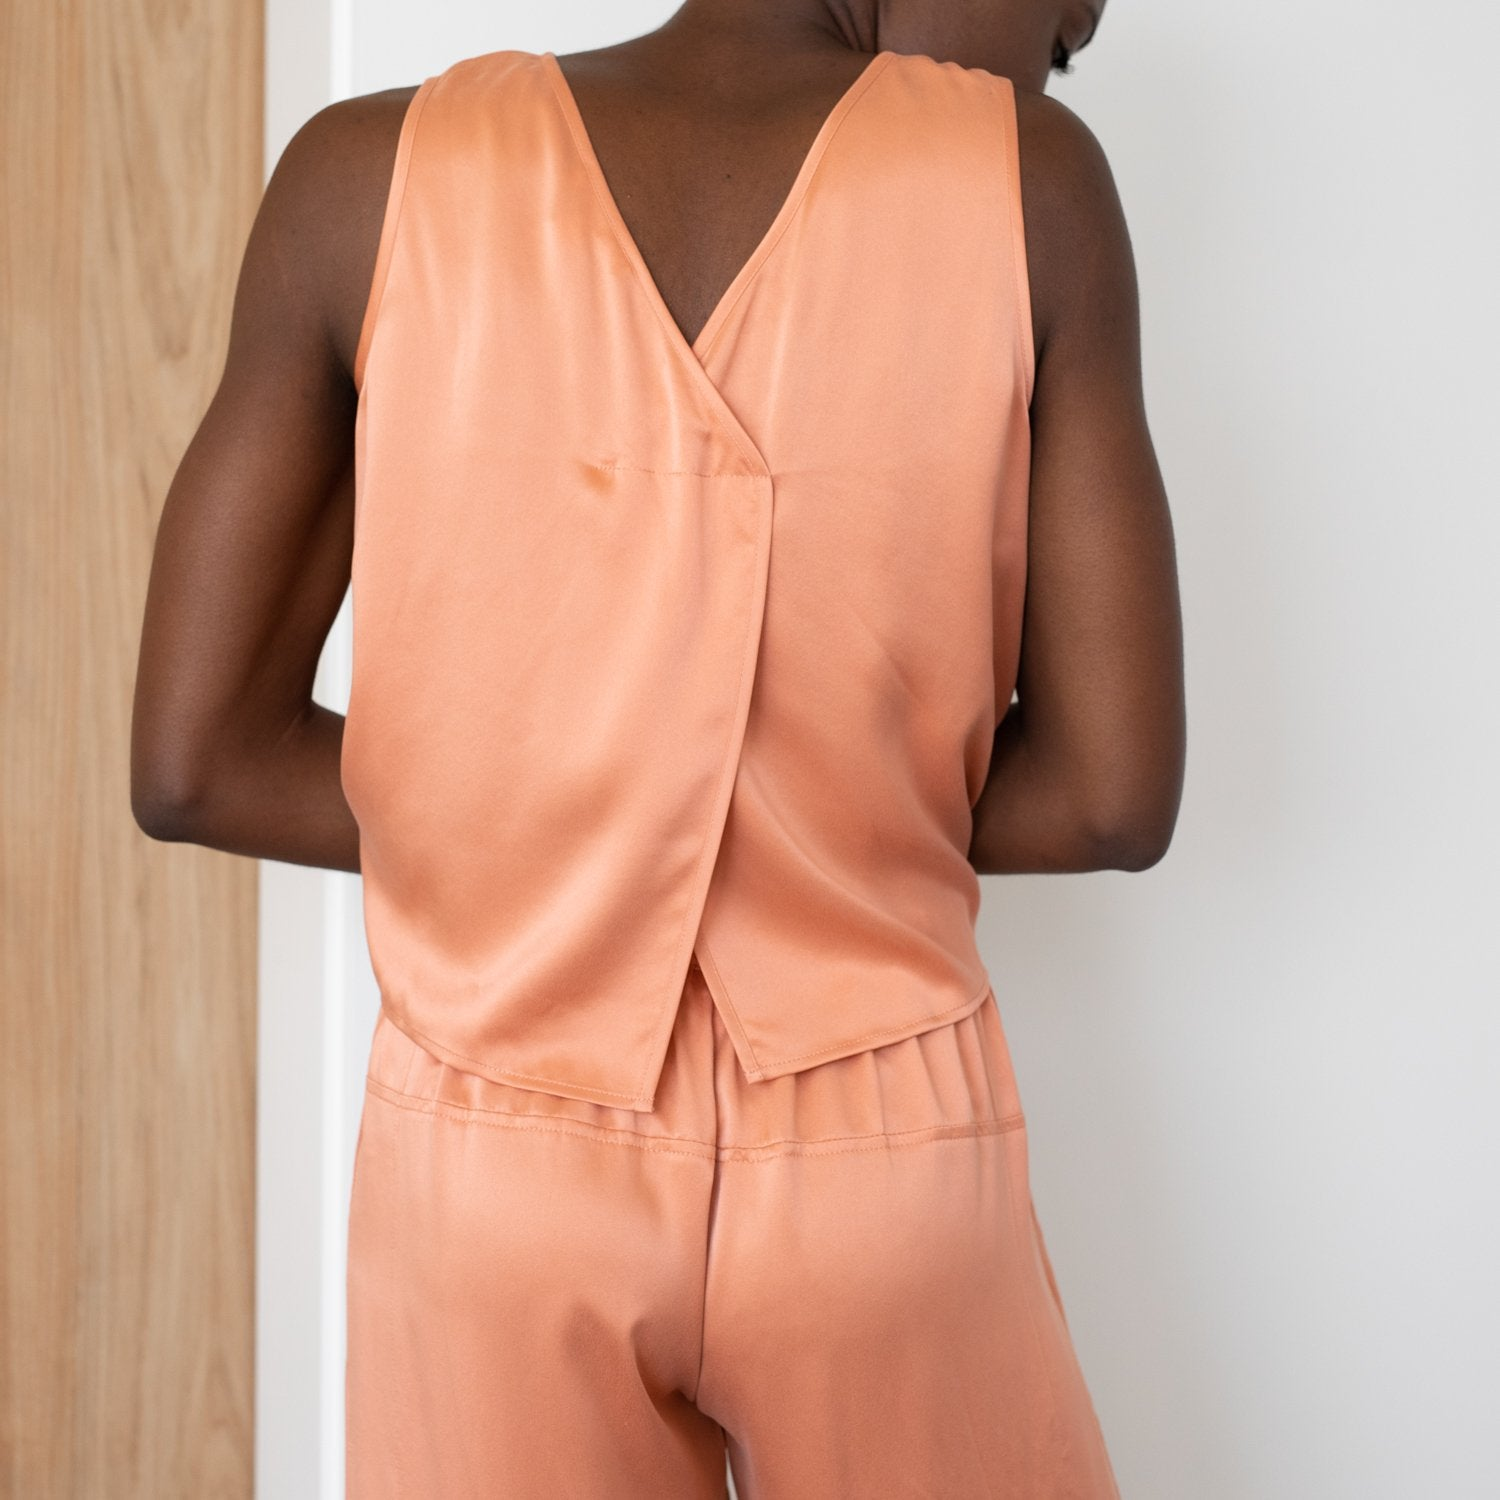 Lunya Sleepwear Washable Silk Pant Set - #Sunset